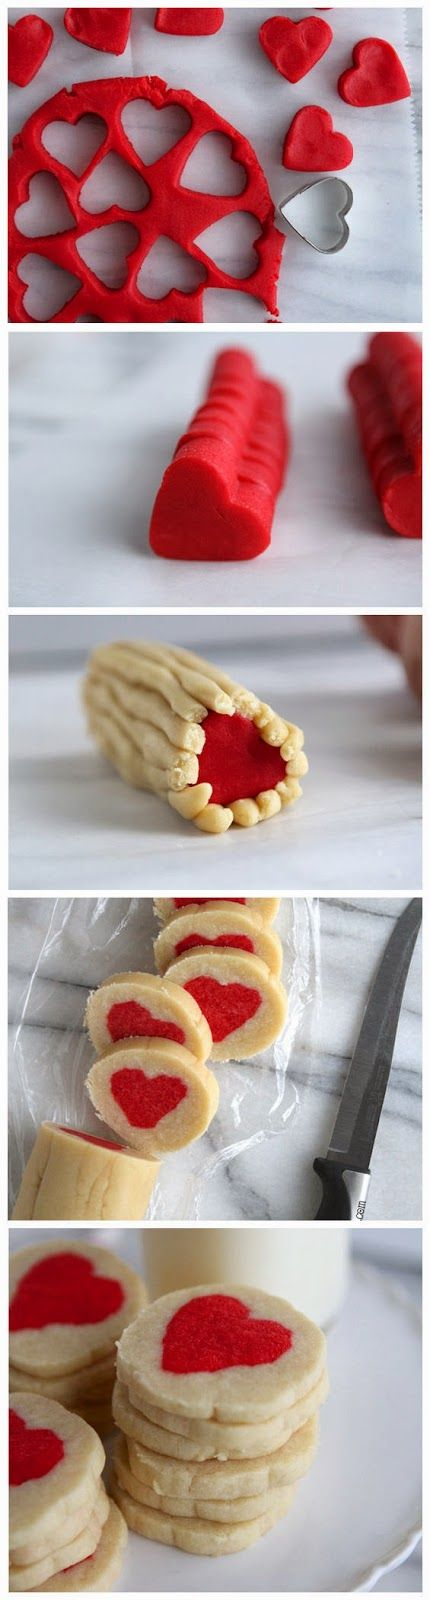 Slice n' Bake Heart Cookies